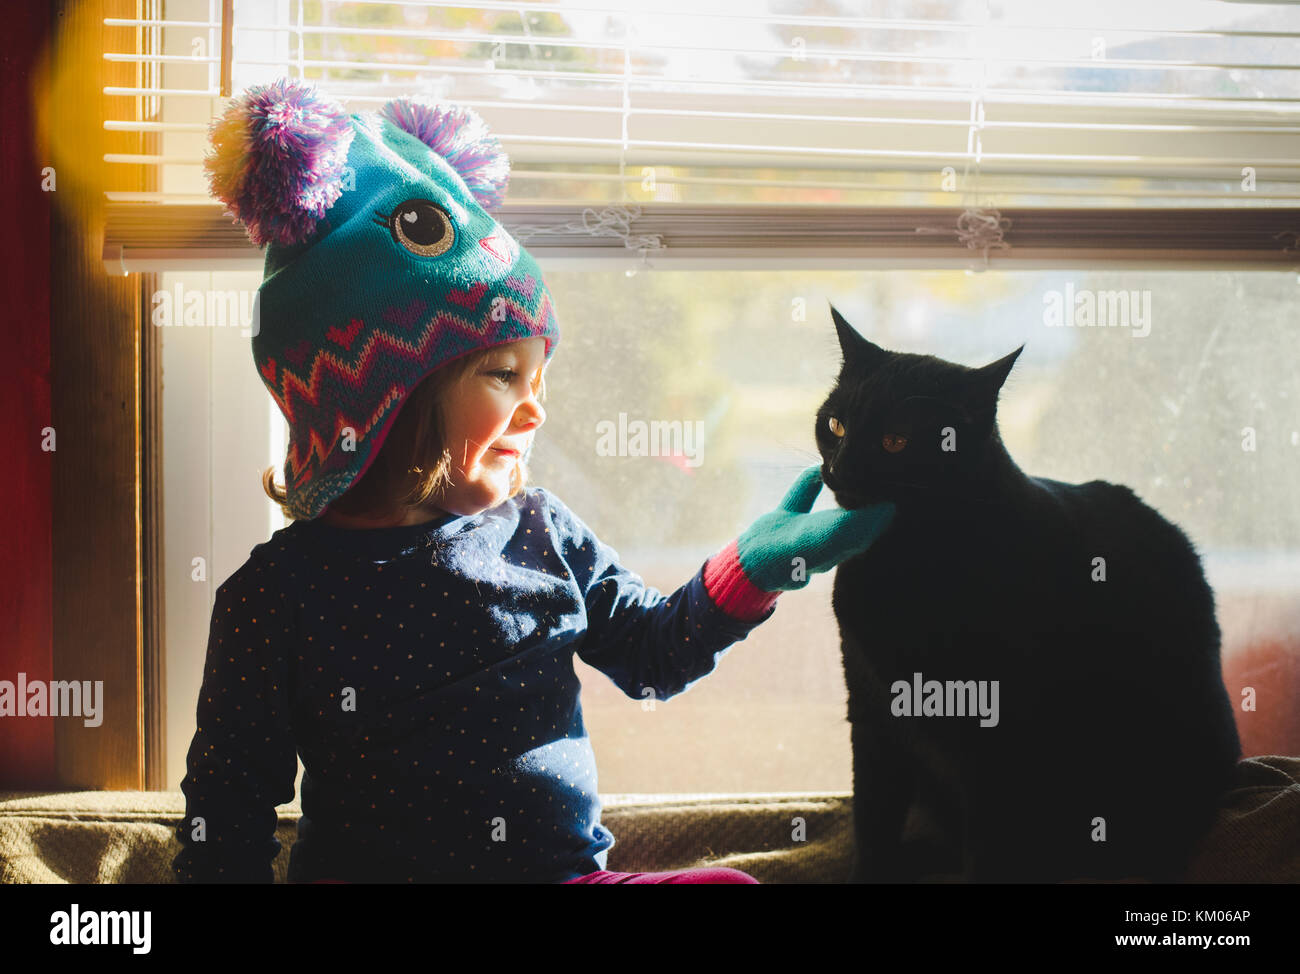 A little girl wearing a winter hat pets a cat while sitting in a sunny window. - Stock Image